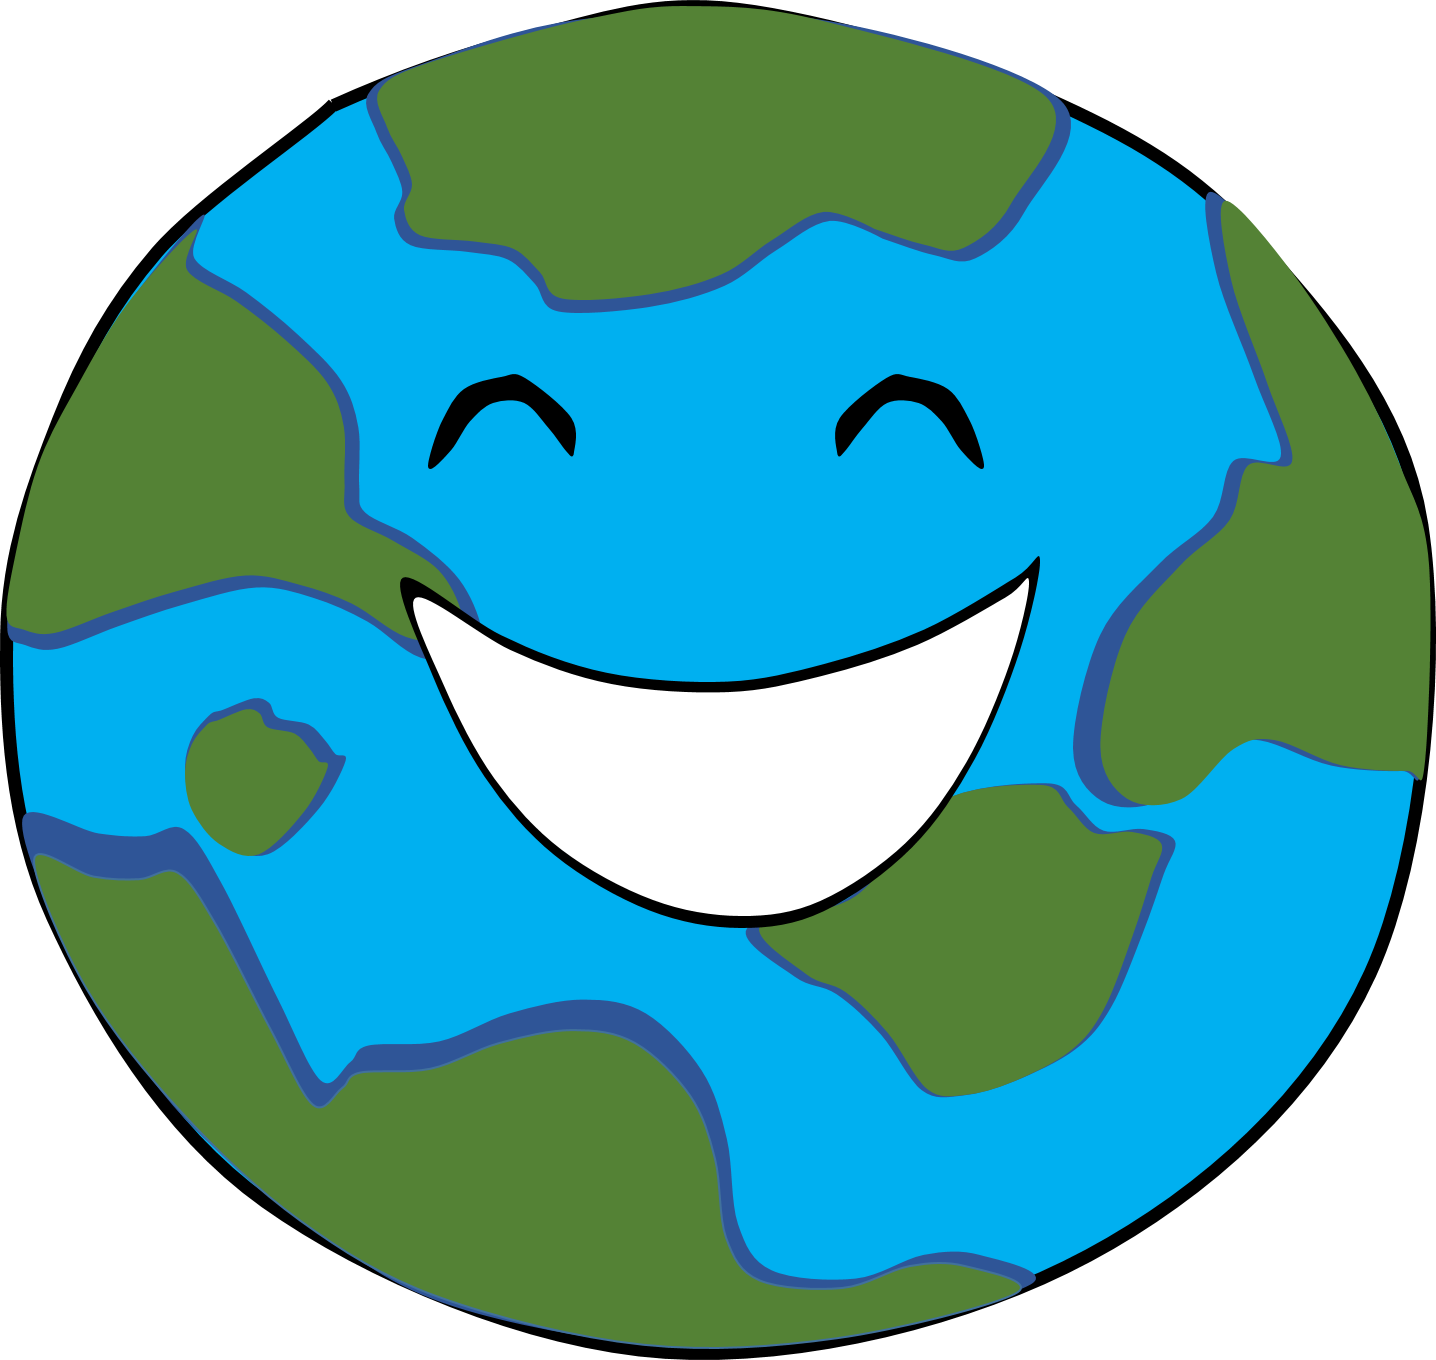 Earth happy frames illustrations. Planet clipart cute